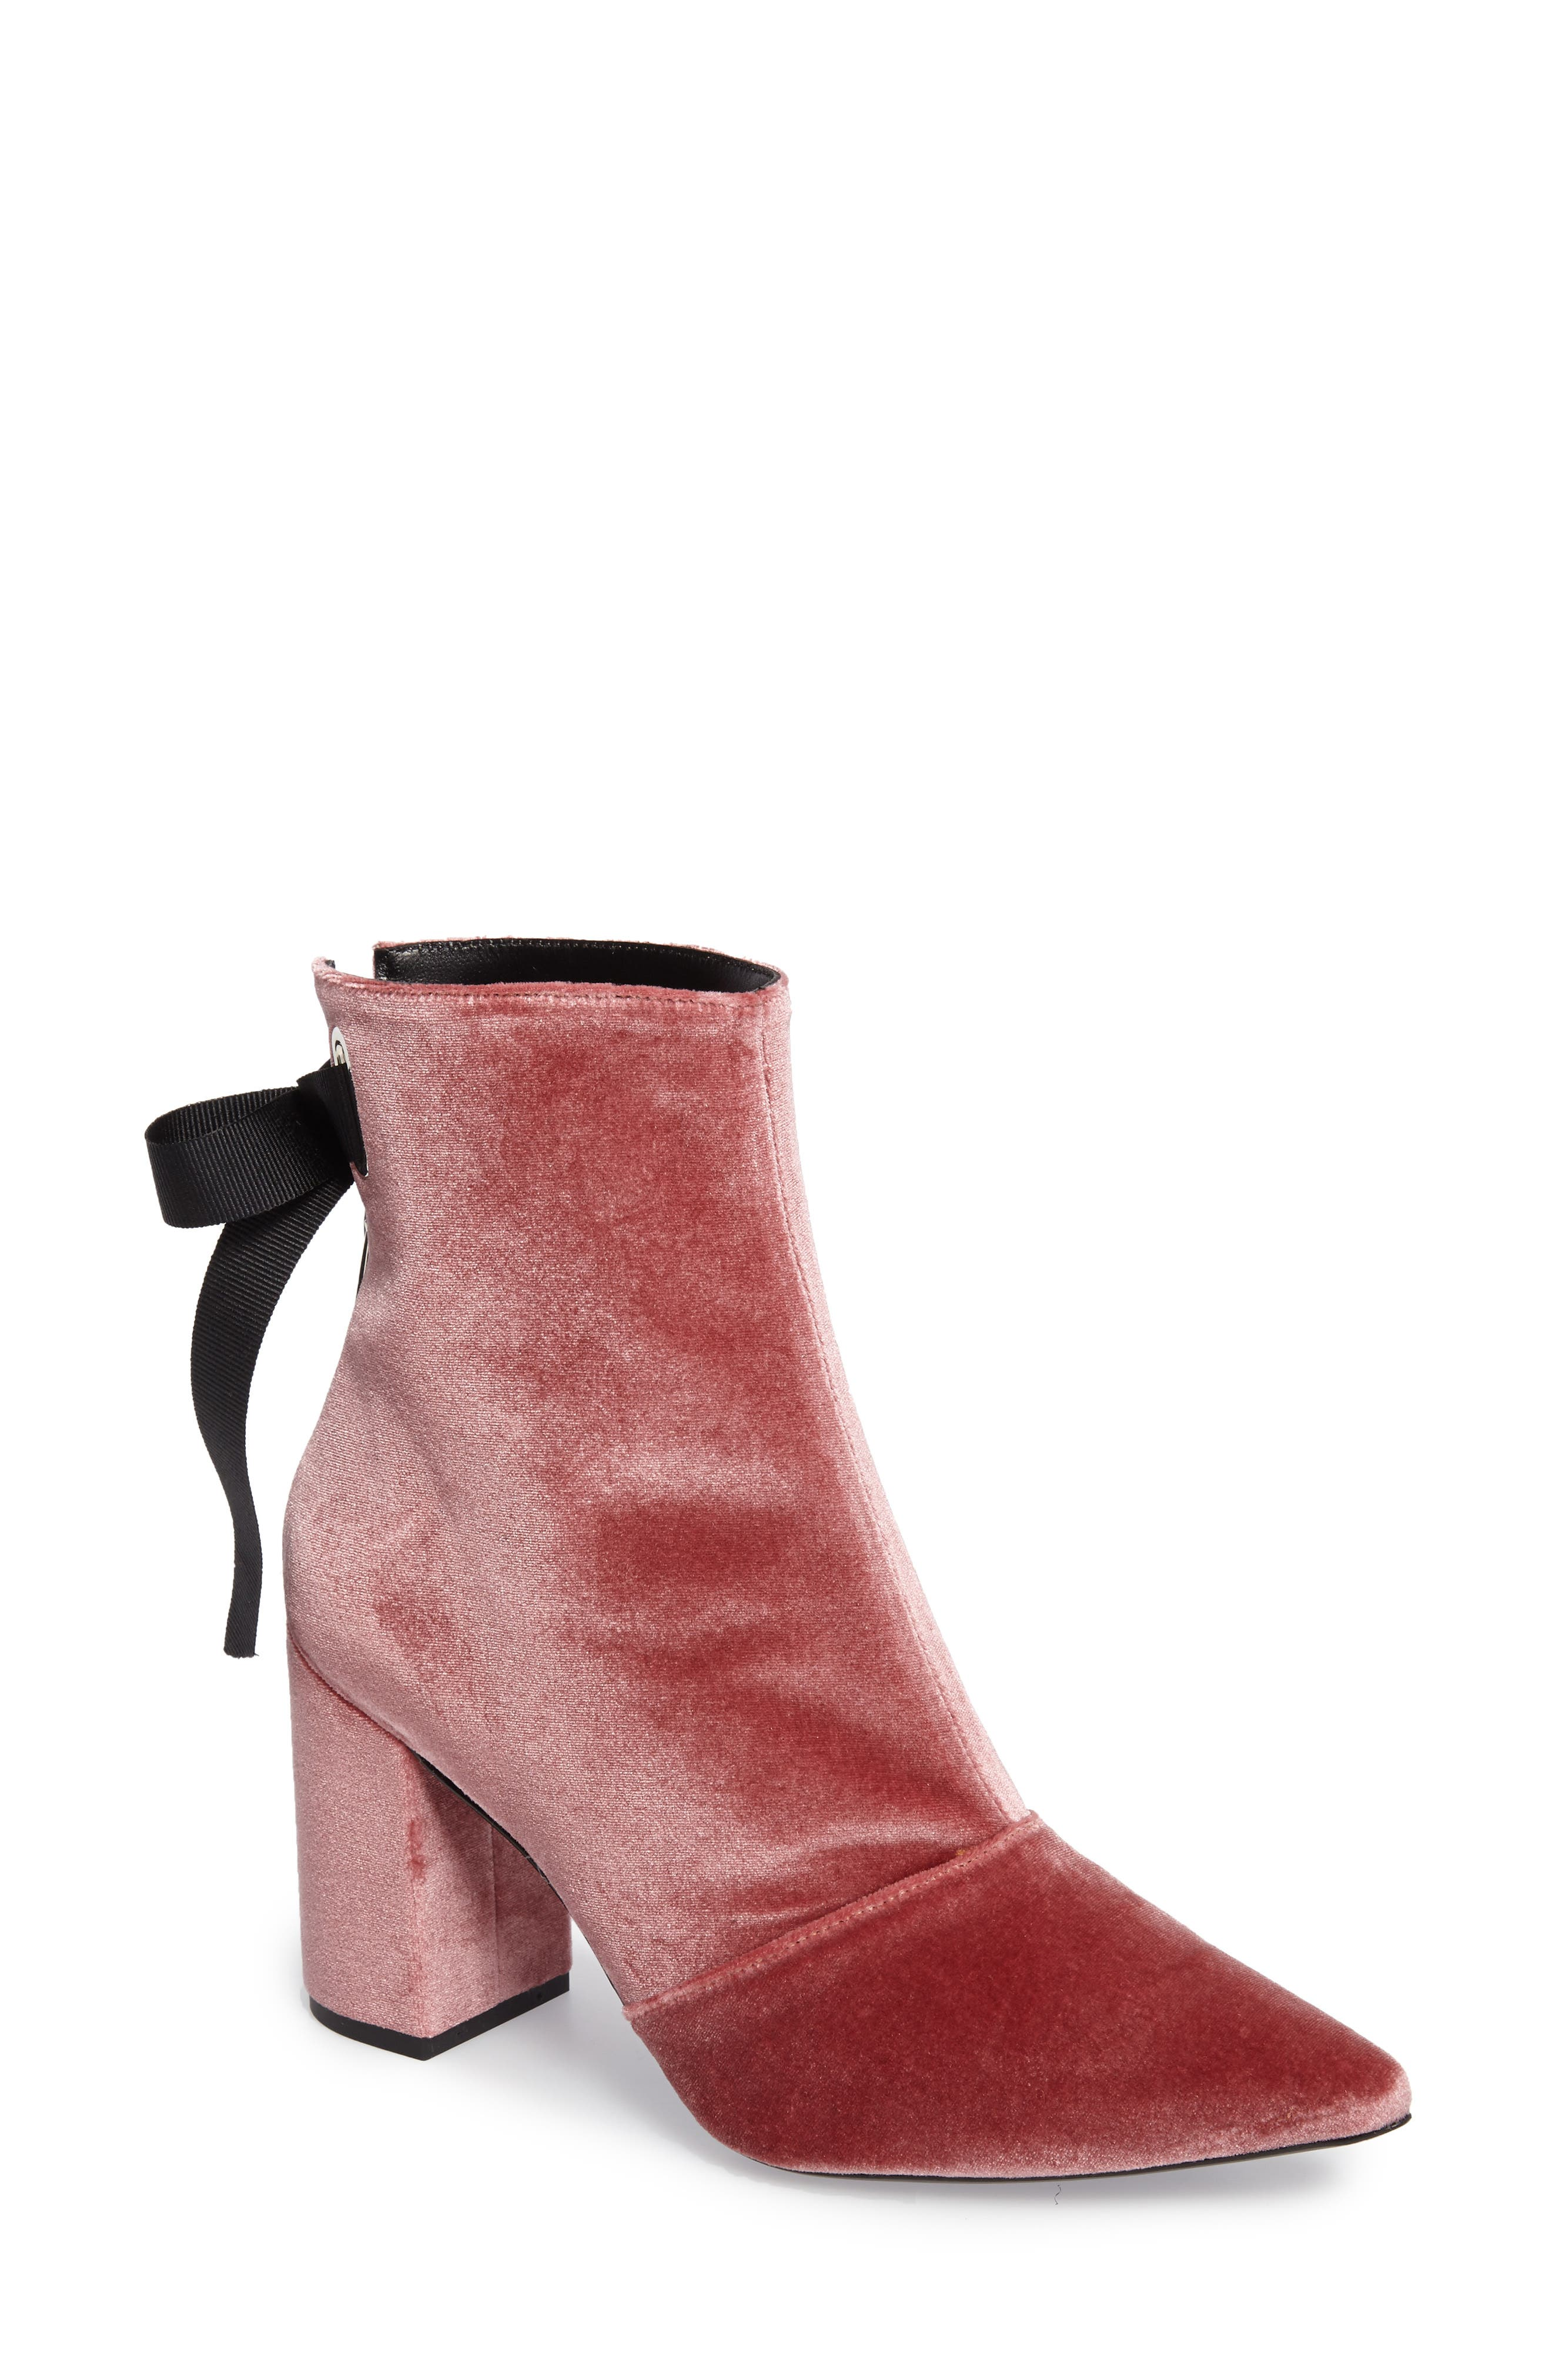 x Self-Portrait Karlit Pointy Toe Bootie,                         Main,                         color,